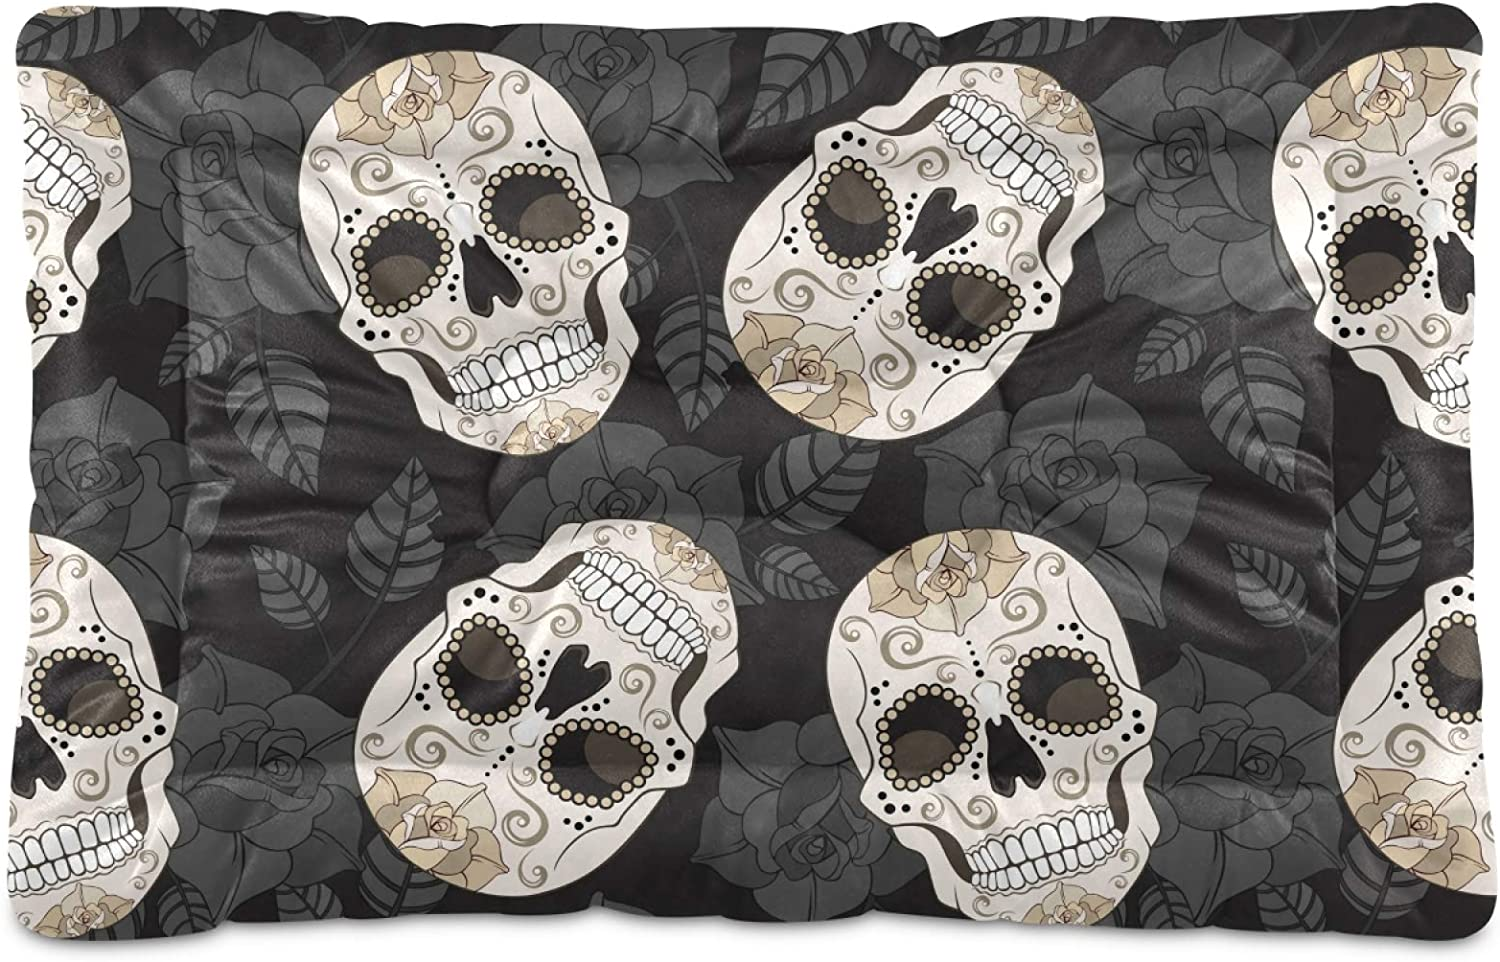 Dog Bed Year-end Credence gift Mat Skull Skeleton Washable for Mattress L Crate